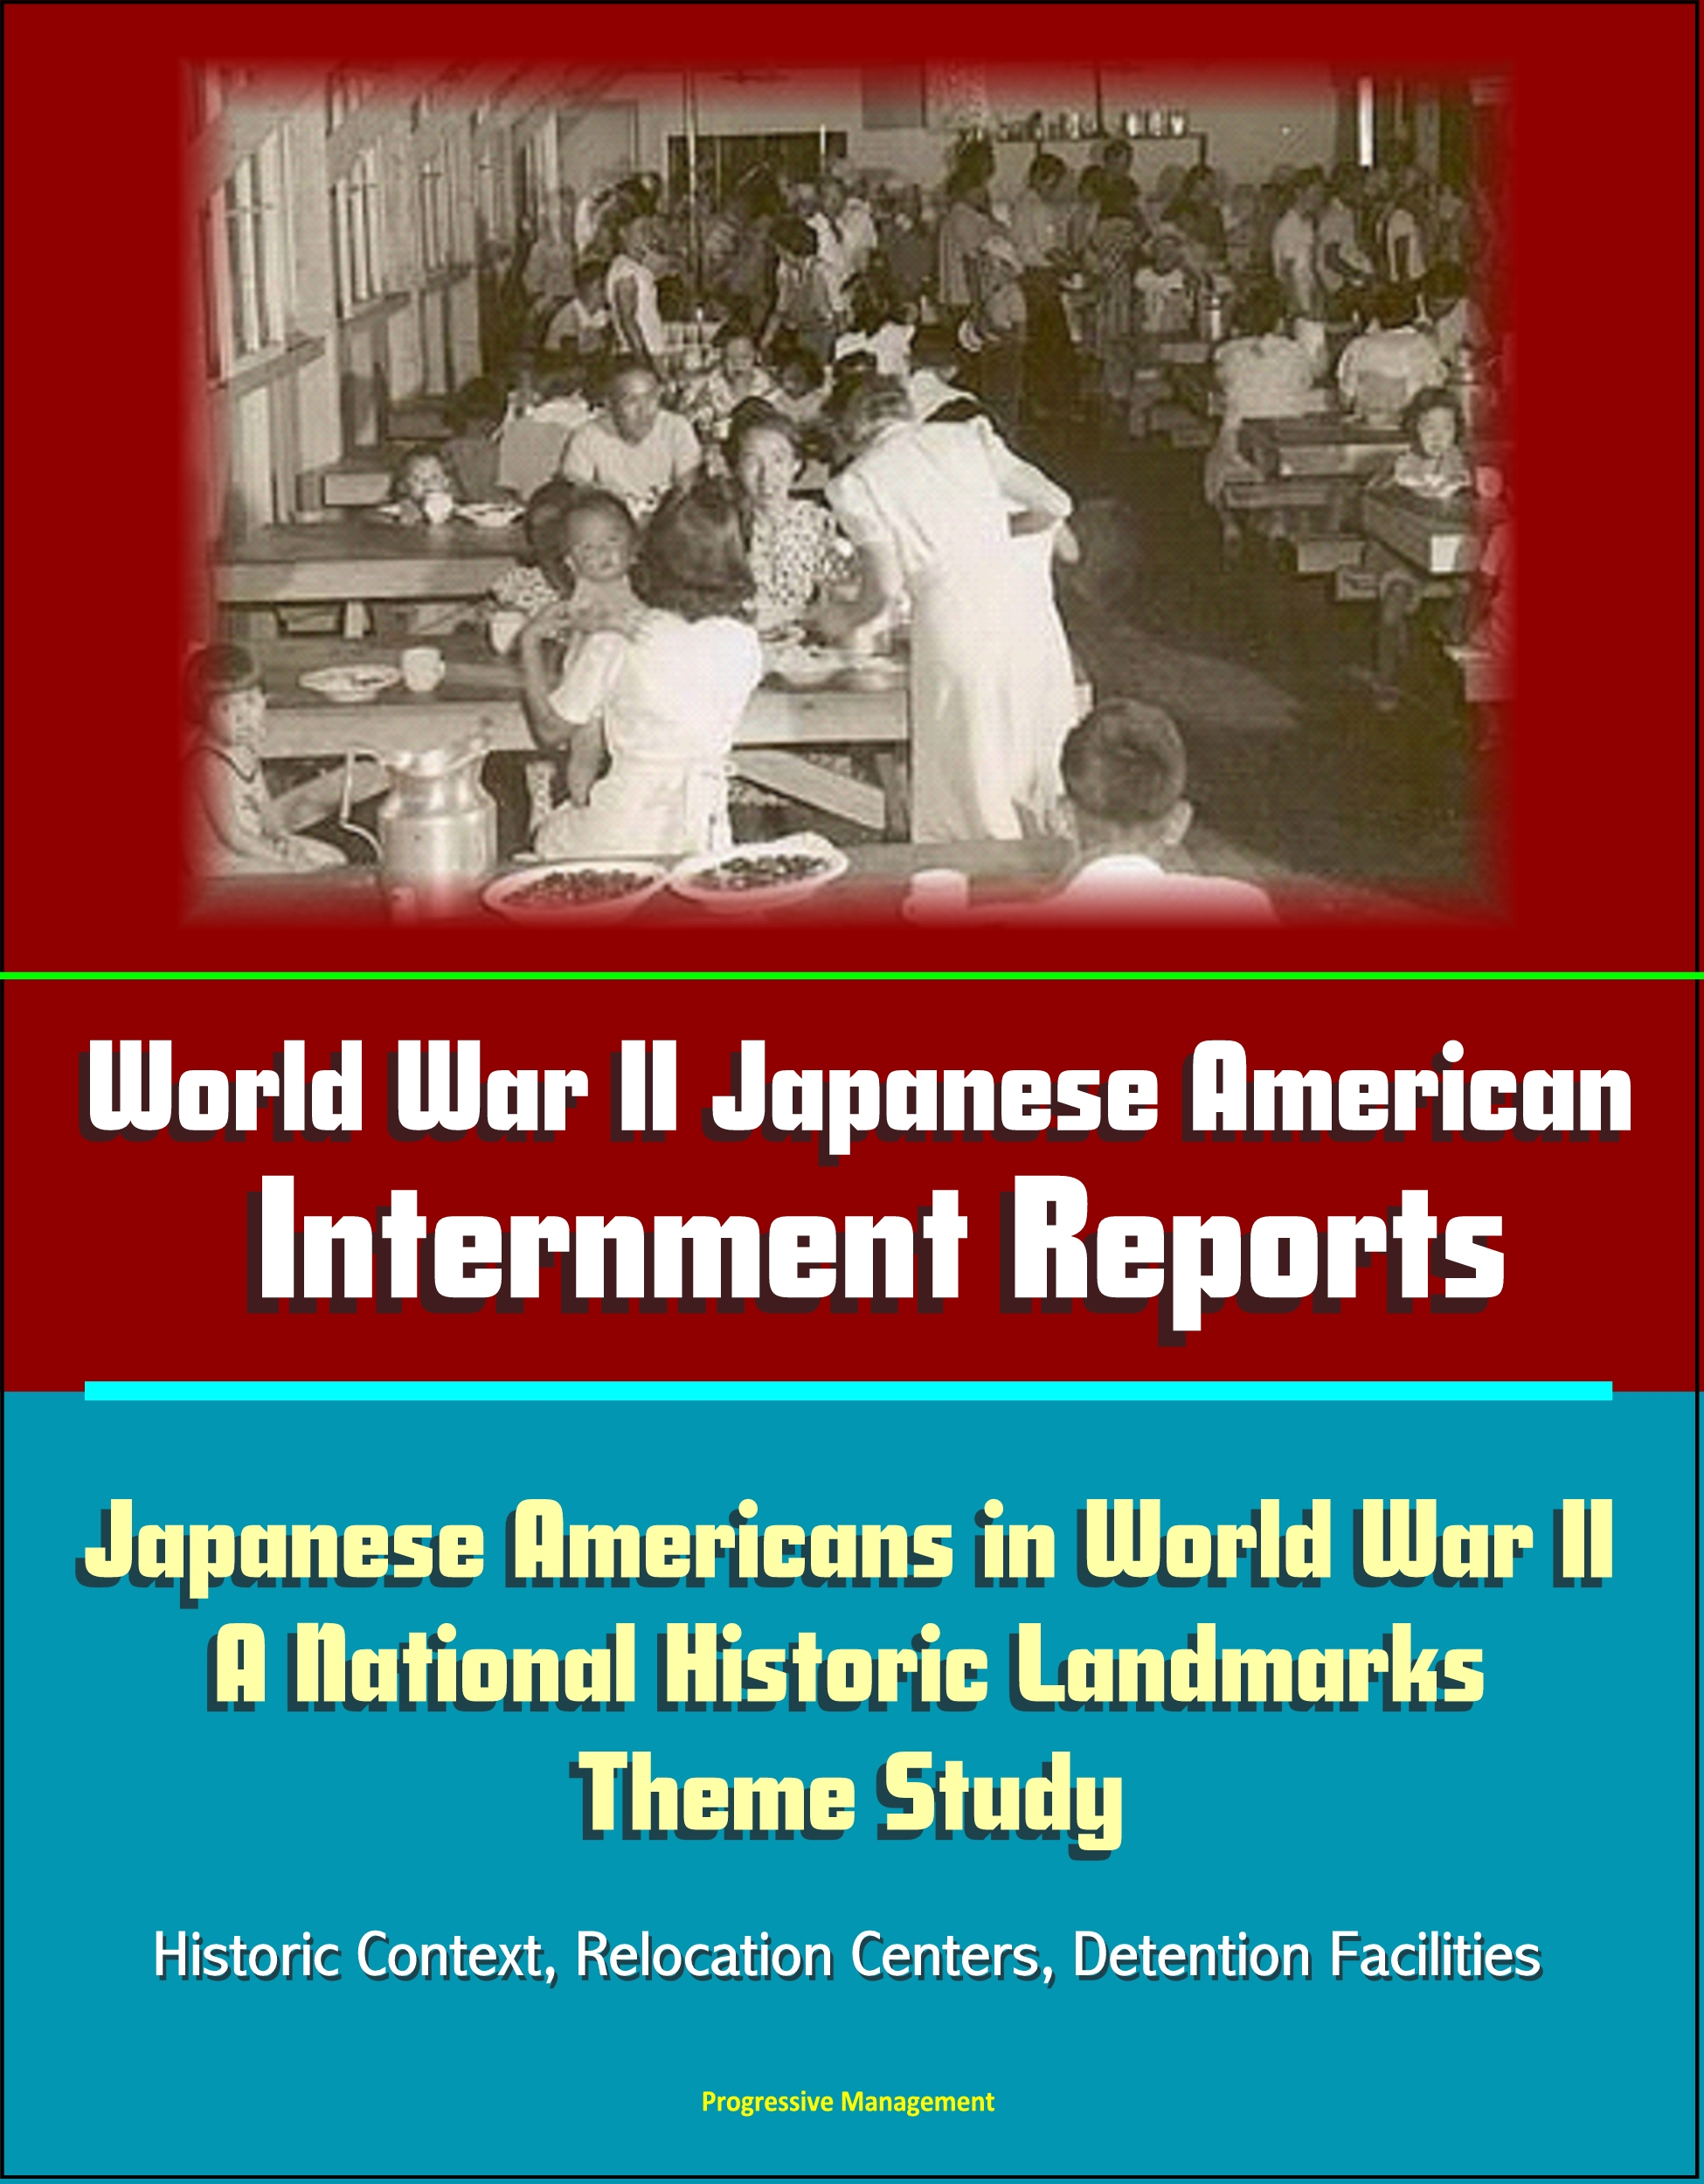 broken promises japanese relocation in wwii essay Even before the japanese-americans were relocated, their livelihood was seriously threatened when all accounts in the war relocation authority (wra) was created to set up relocation facilities more asian history essays: biography on hideki tojo (the man behind japan's war machine in wwii.